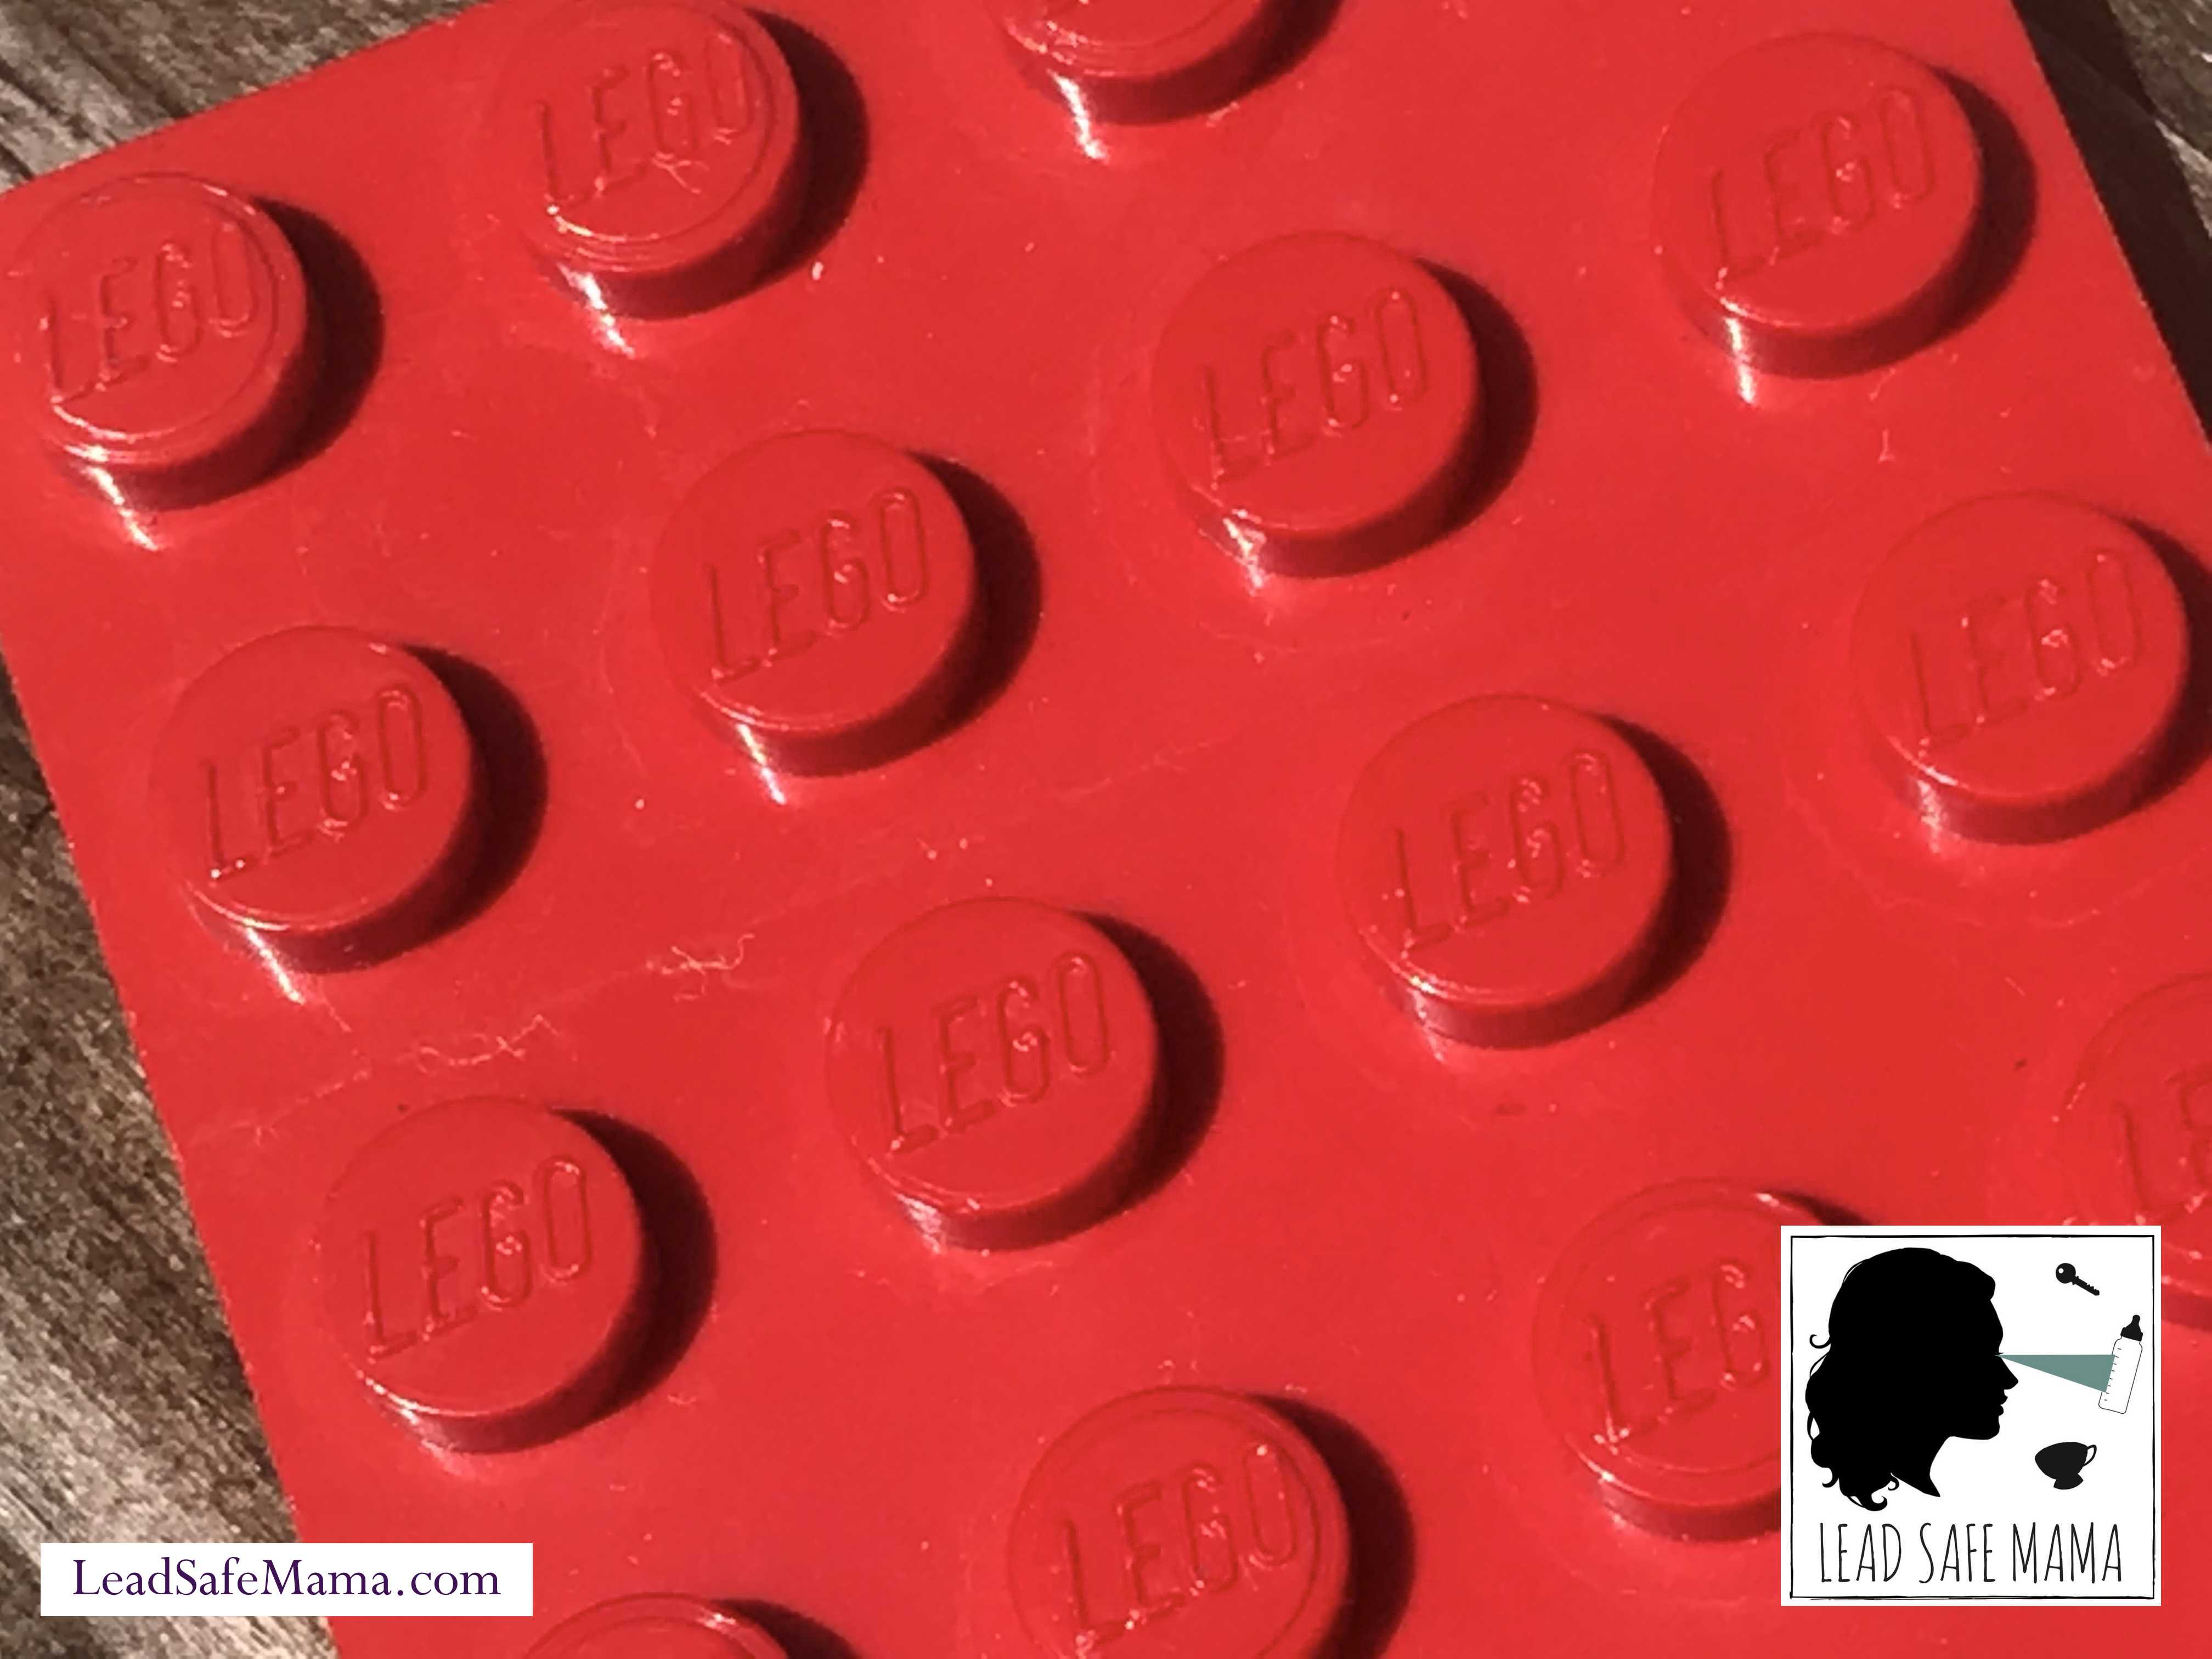 Vintage (1978-1988) Red Lego Brand 4 x 12 flat panel: 7,659 ppm Cadmium (40 ppm is unsafe) + 39 ppm Arsenic